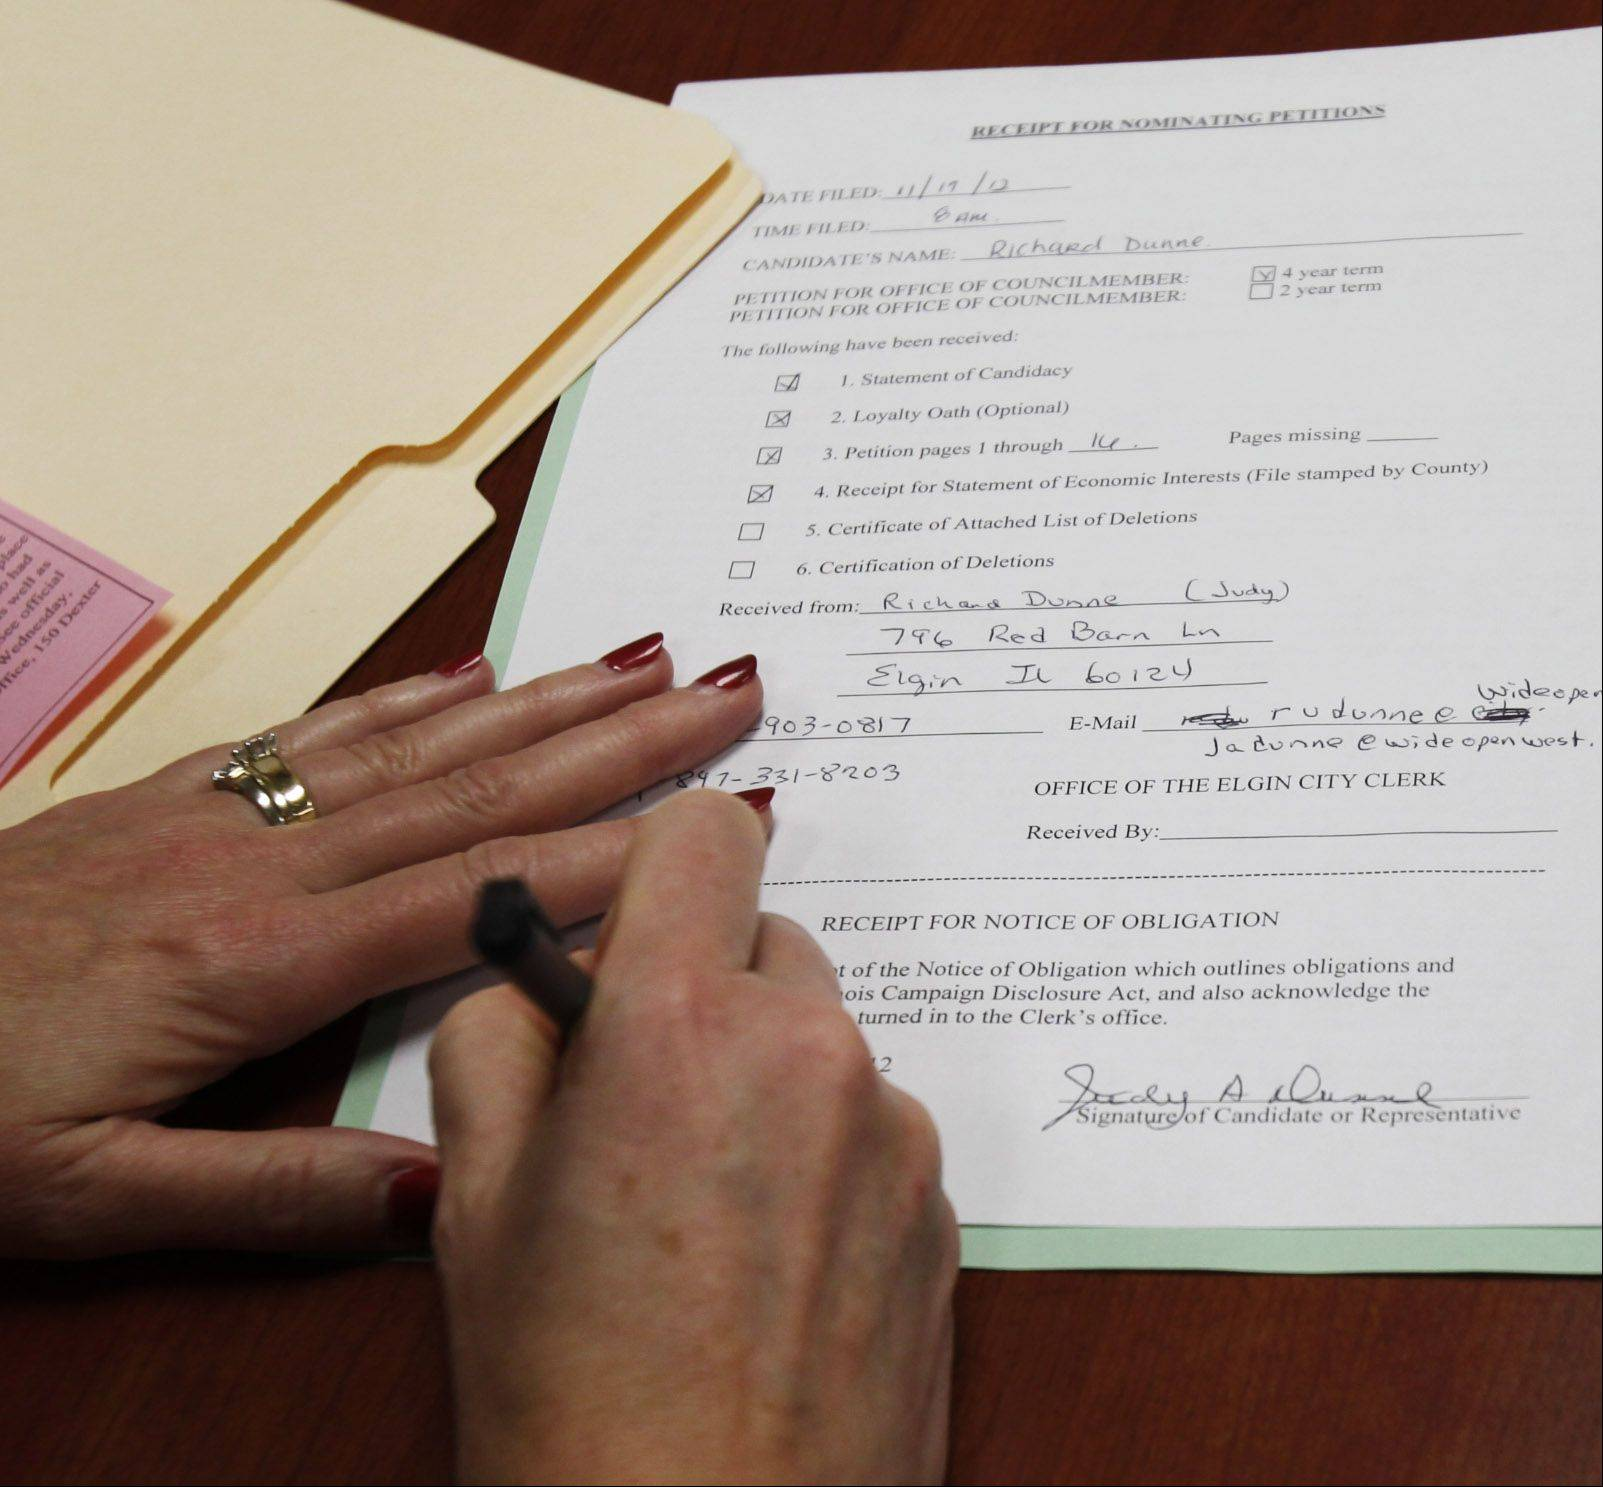 Judy Dunne signs the paperwork to make her husband's re-election bid official at the city clerk's office Monday morning.